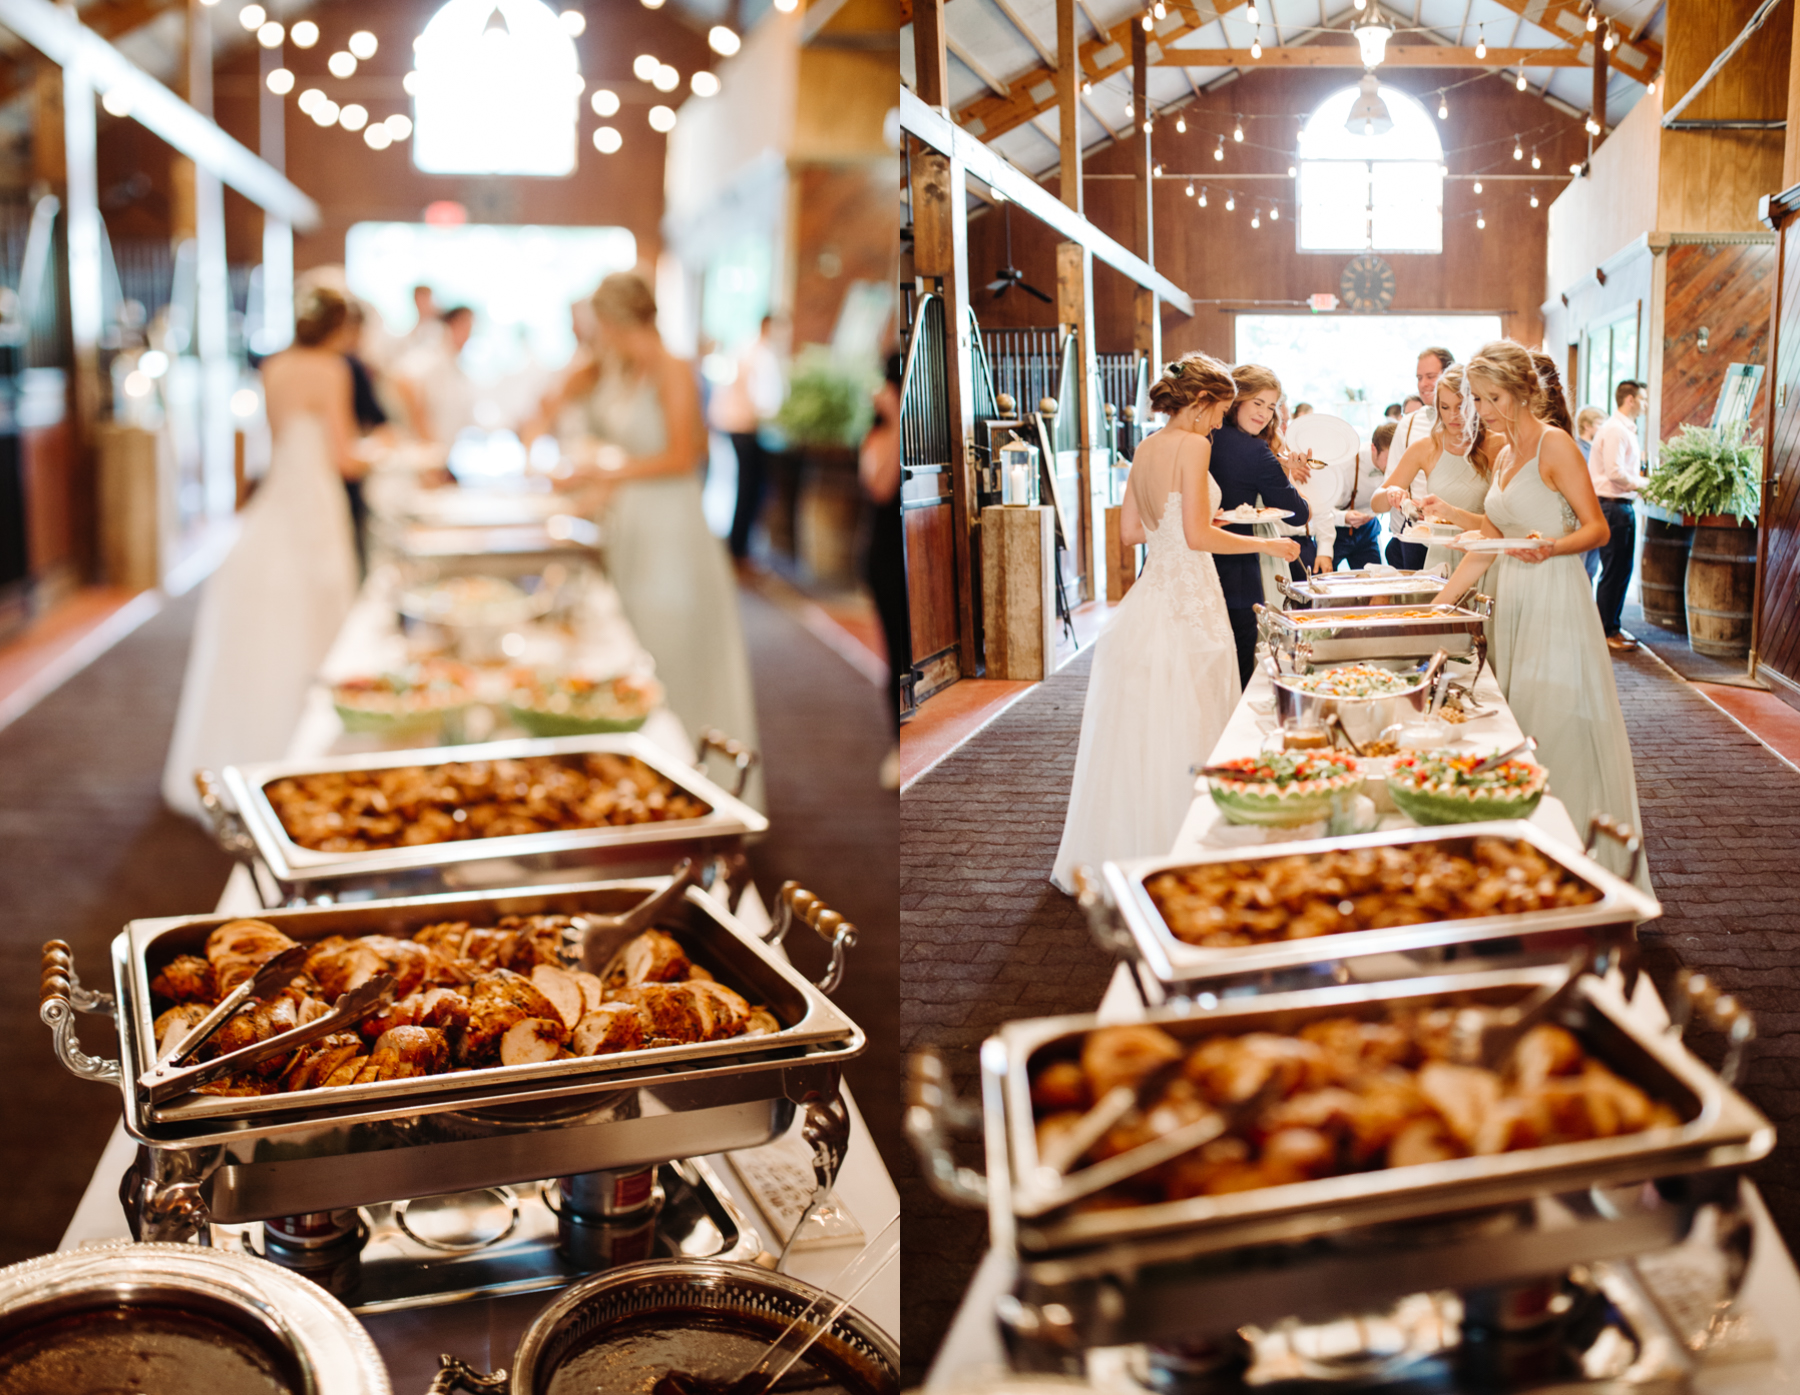 Catering spread at a stables at strawberry creek wedding in knoxville, tennessee